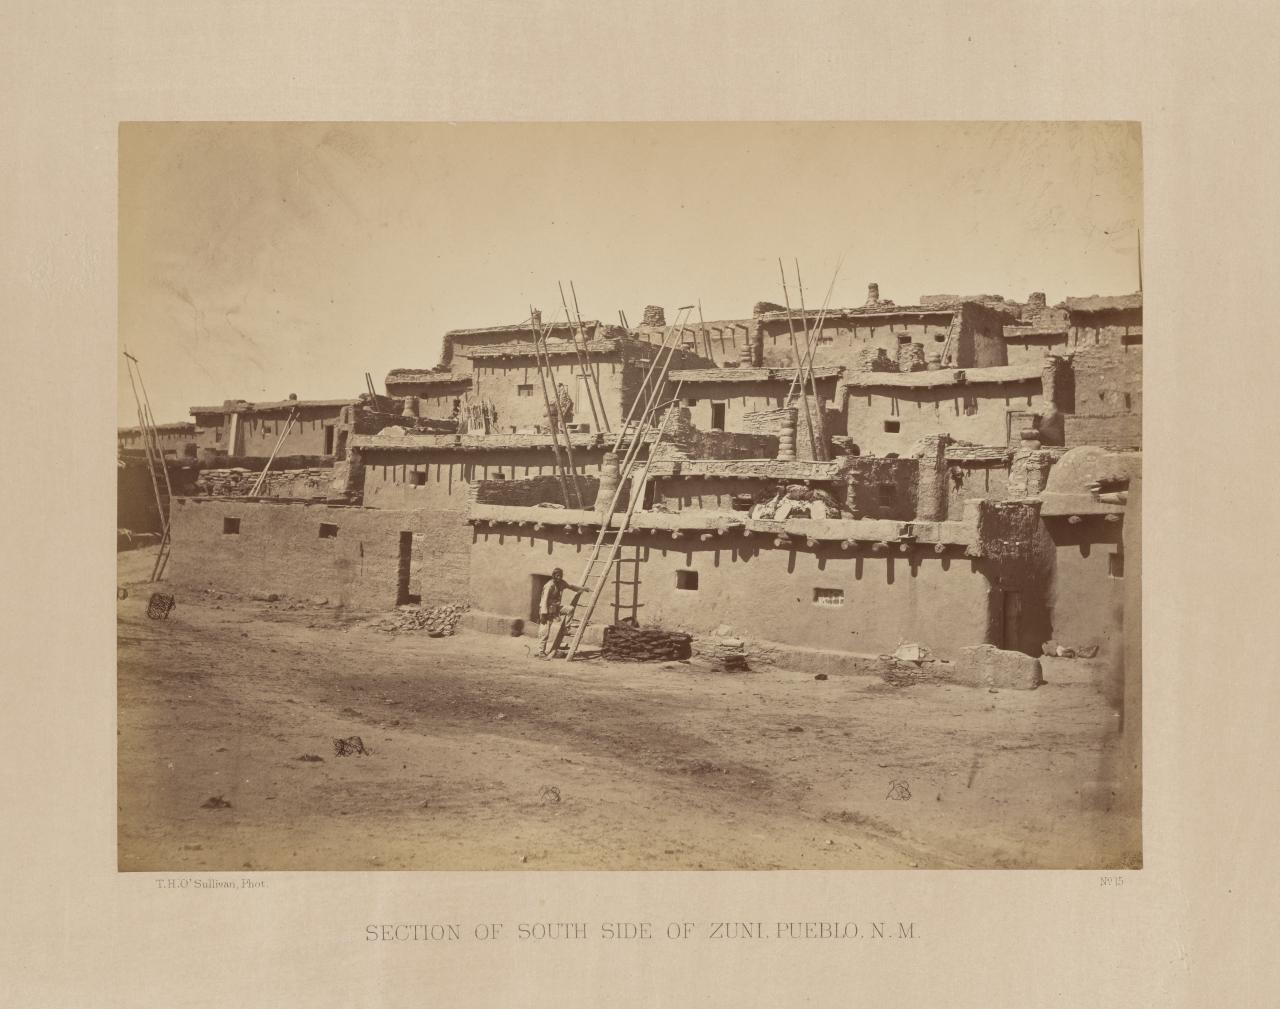 Section of south side of Zuni, Pueblo, New Mexico